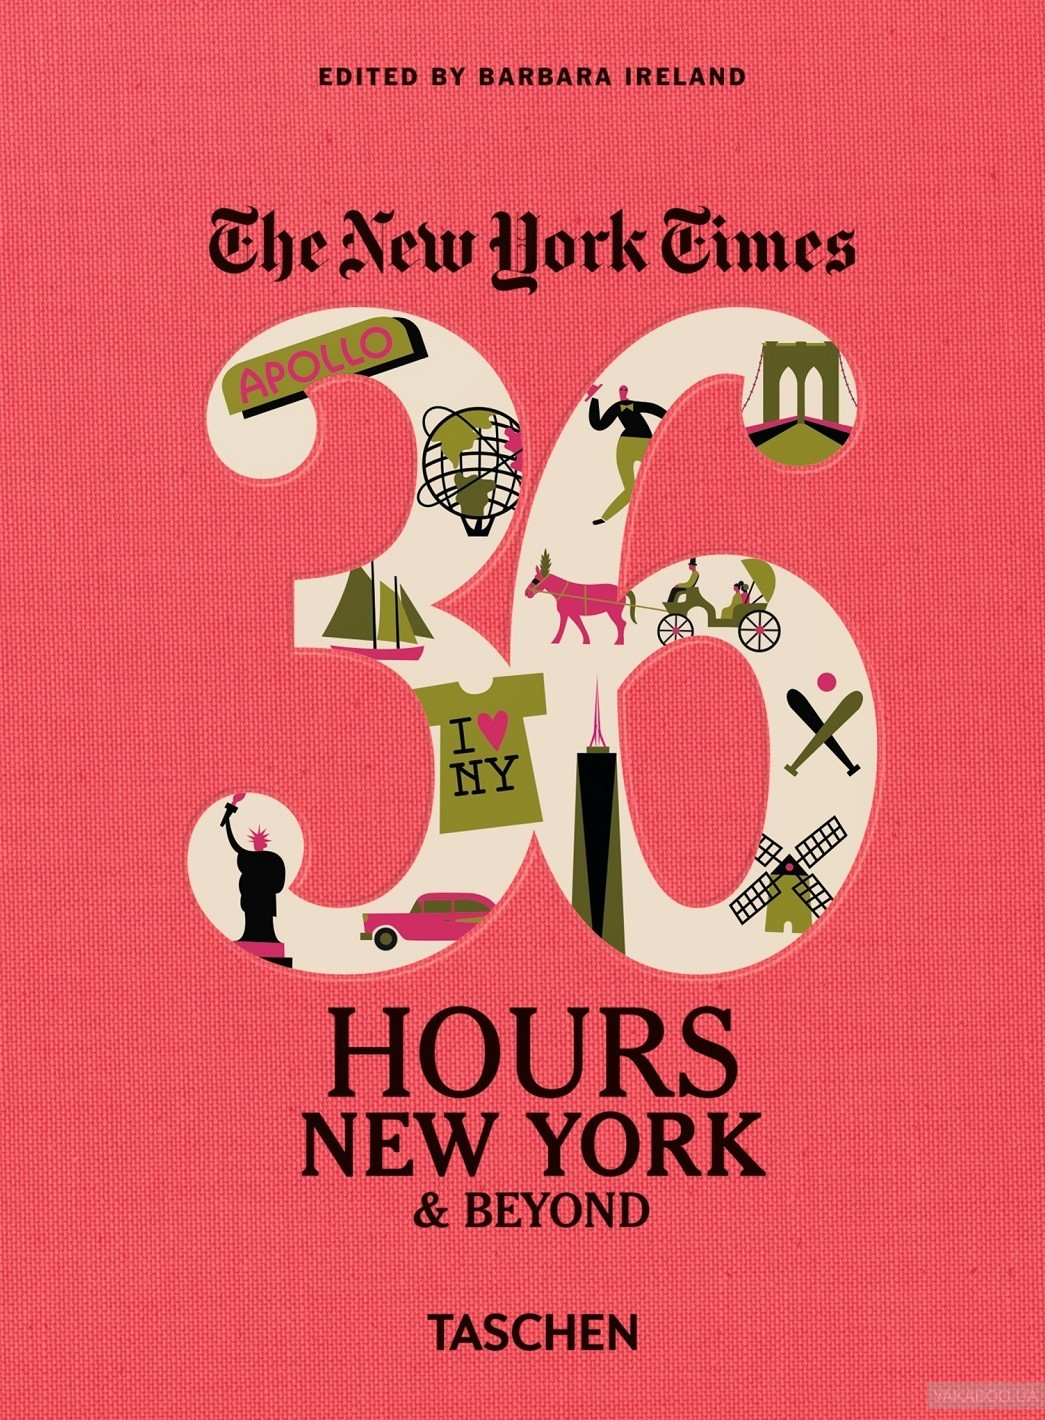 The new york times. 36 hours, new york & beyond